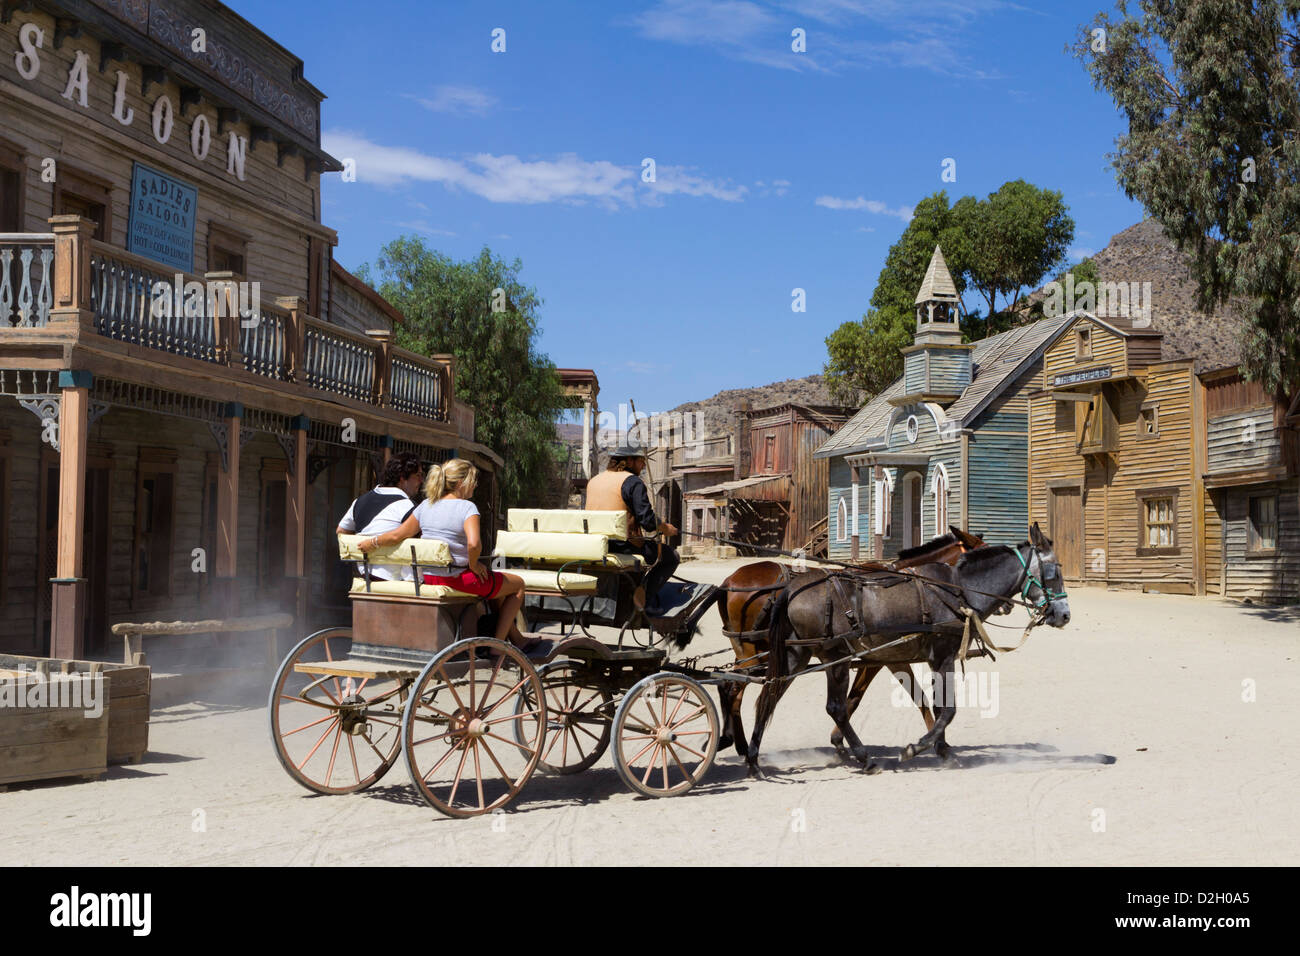 Texas Hollywood film set, used as location for the Western film Once Upon a time in the West - Stock Image